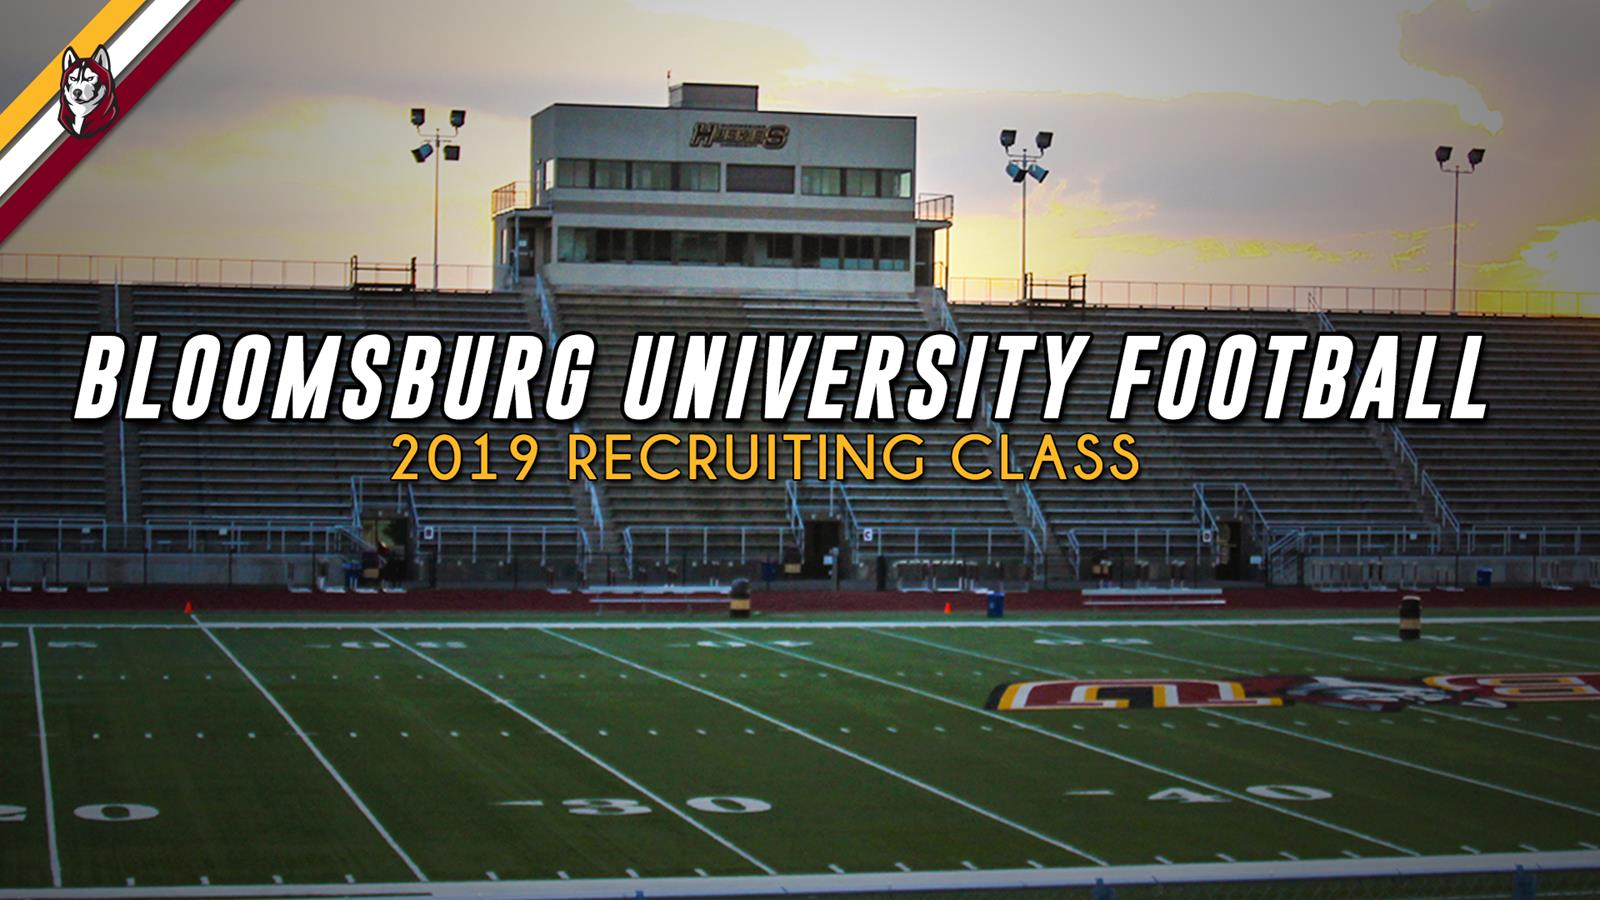 Football Announces 2019 Recruiting Class Bloomsburg University